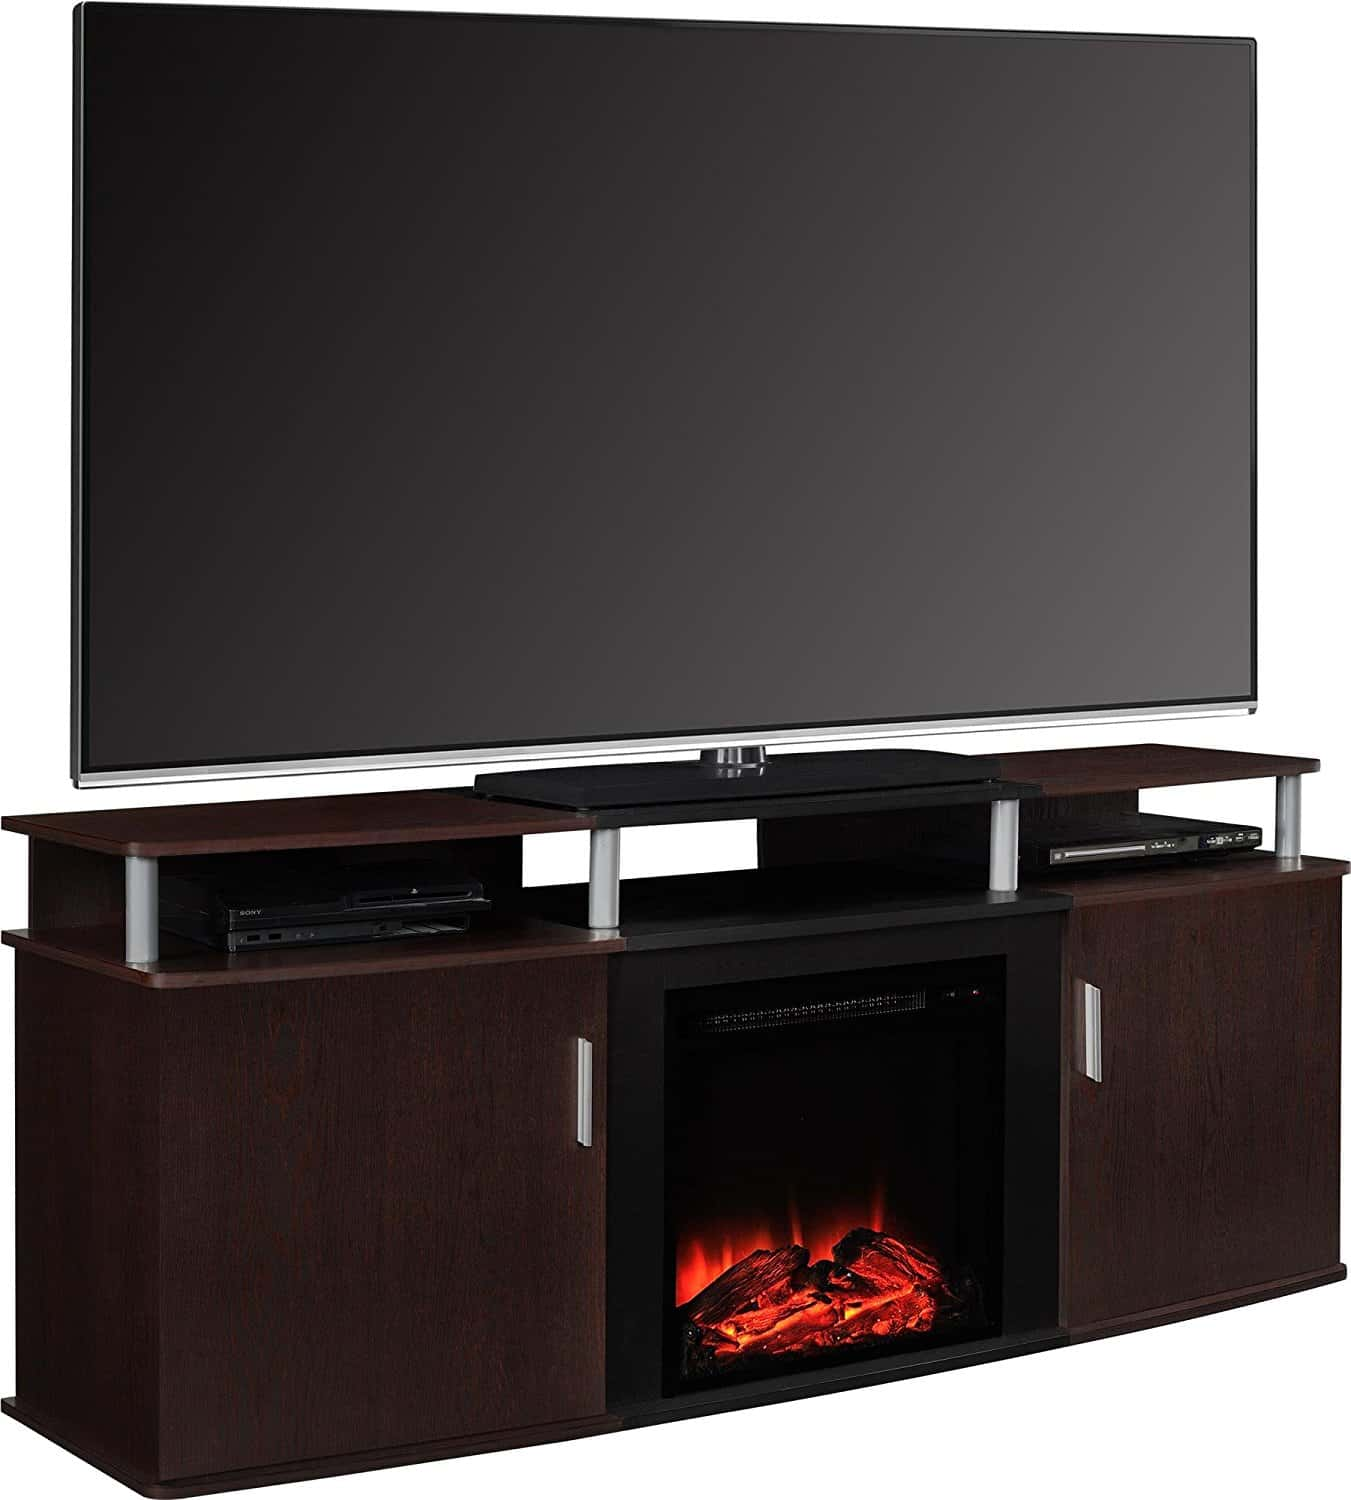 "4. Altra Furniture Carson Fireplace TV Console, 70"", Cherry/Black"